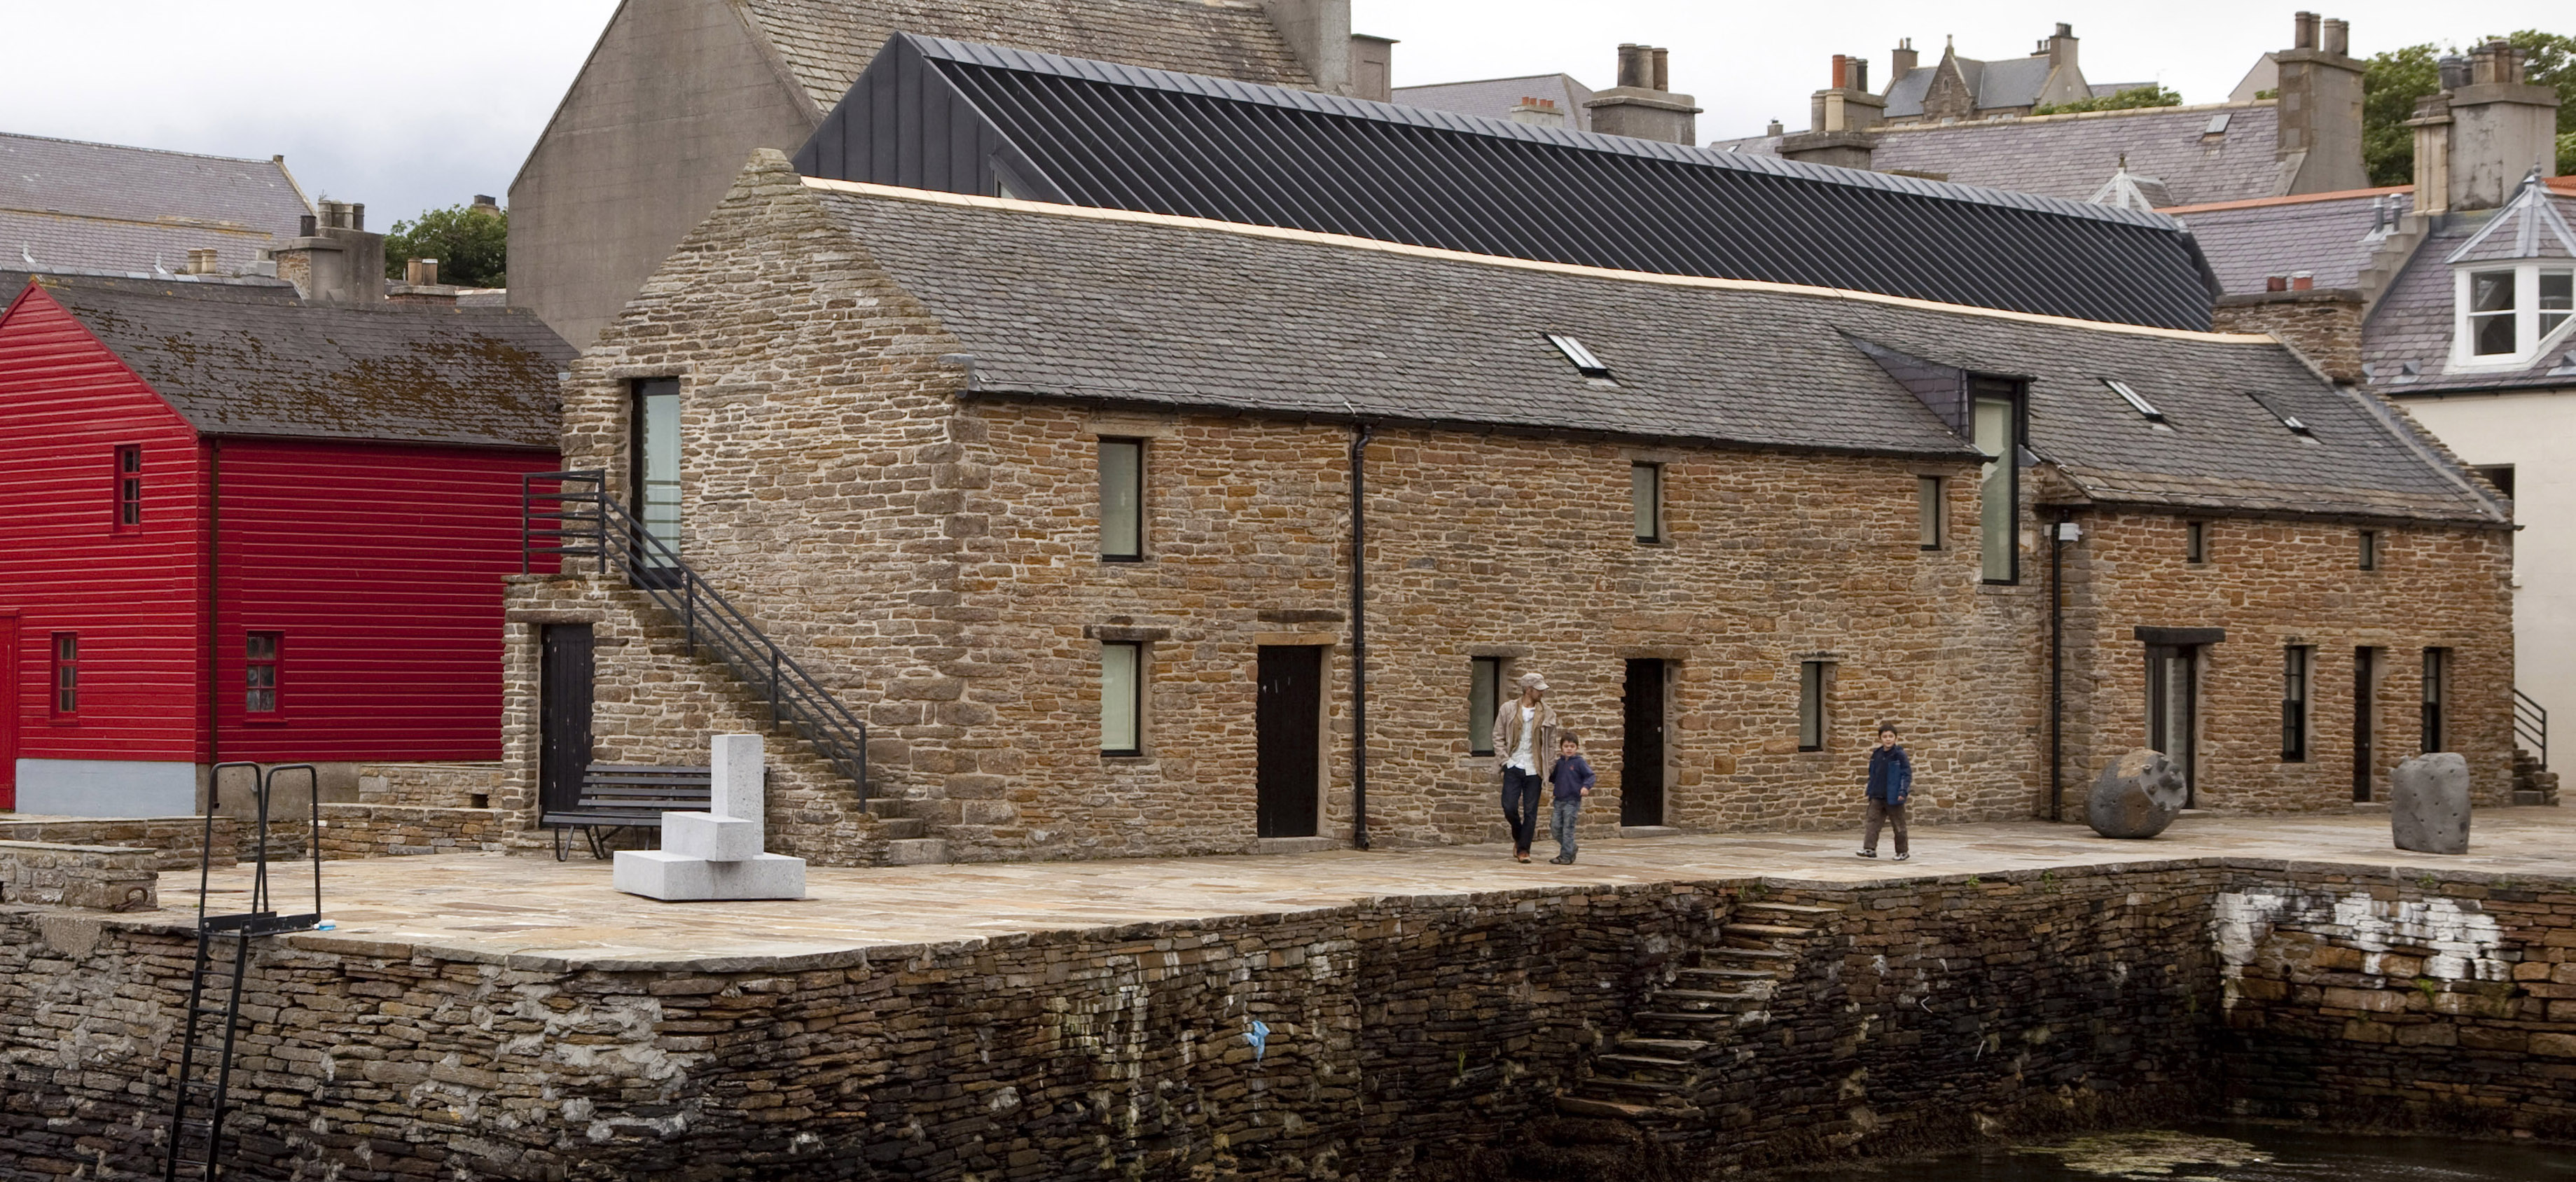 Pier Arts Centre Orkney and Shetland Islands, Five star walking tours - Orkney Isles Top Ten Things to Do ...